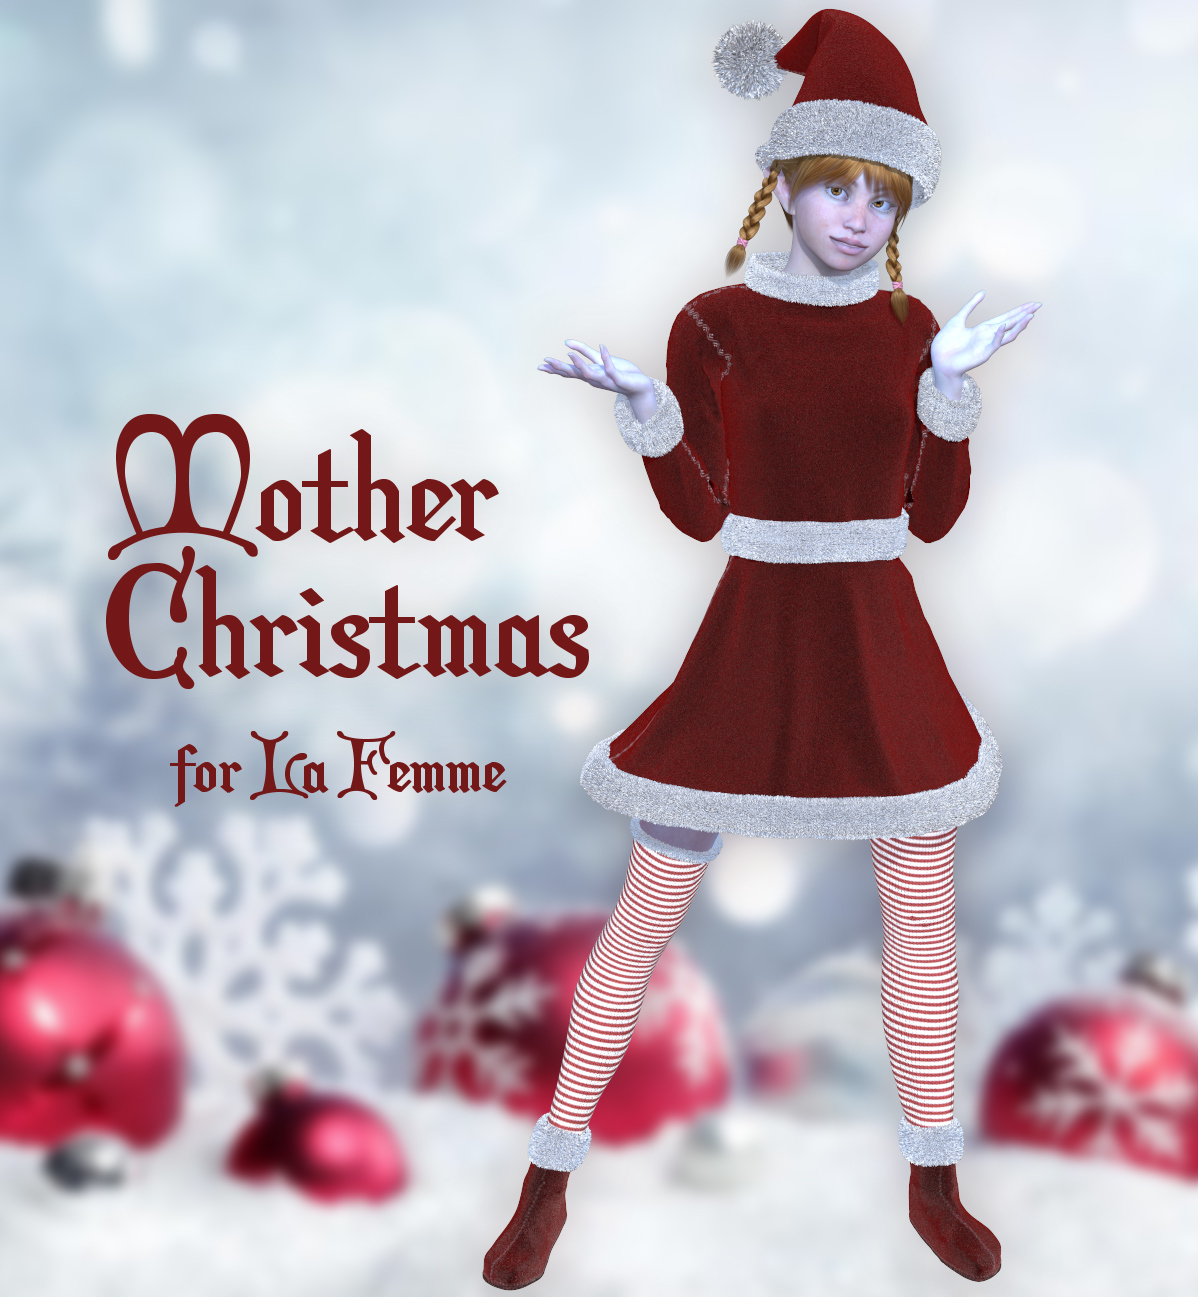 Mother Christmas for La Femme by Tipol